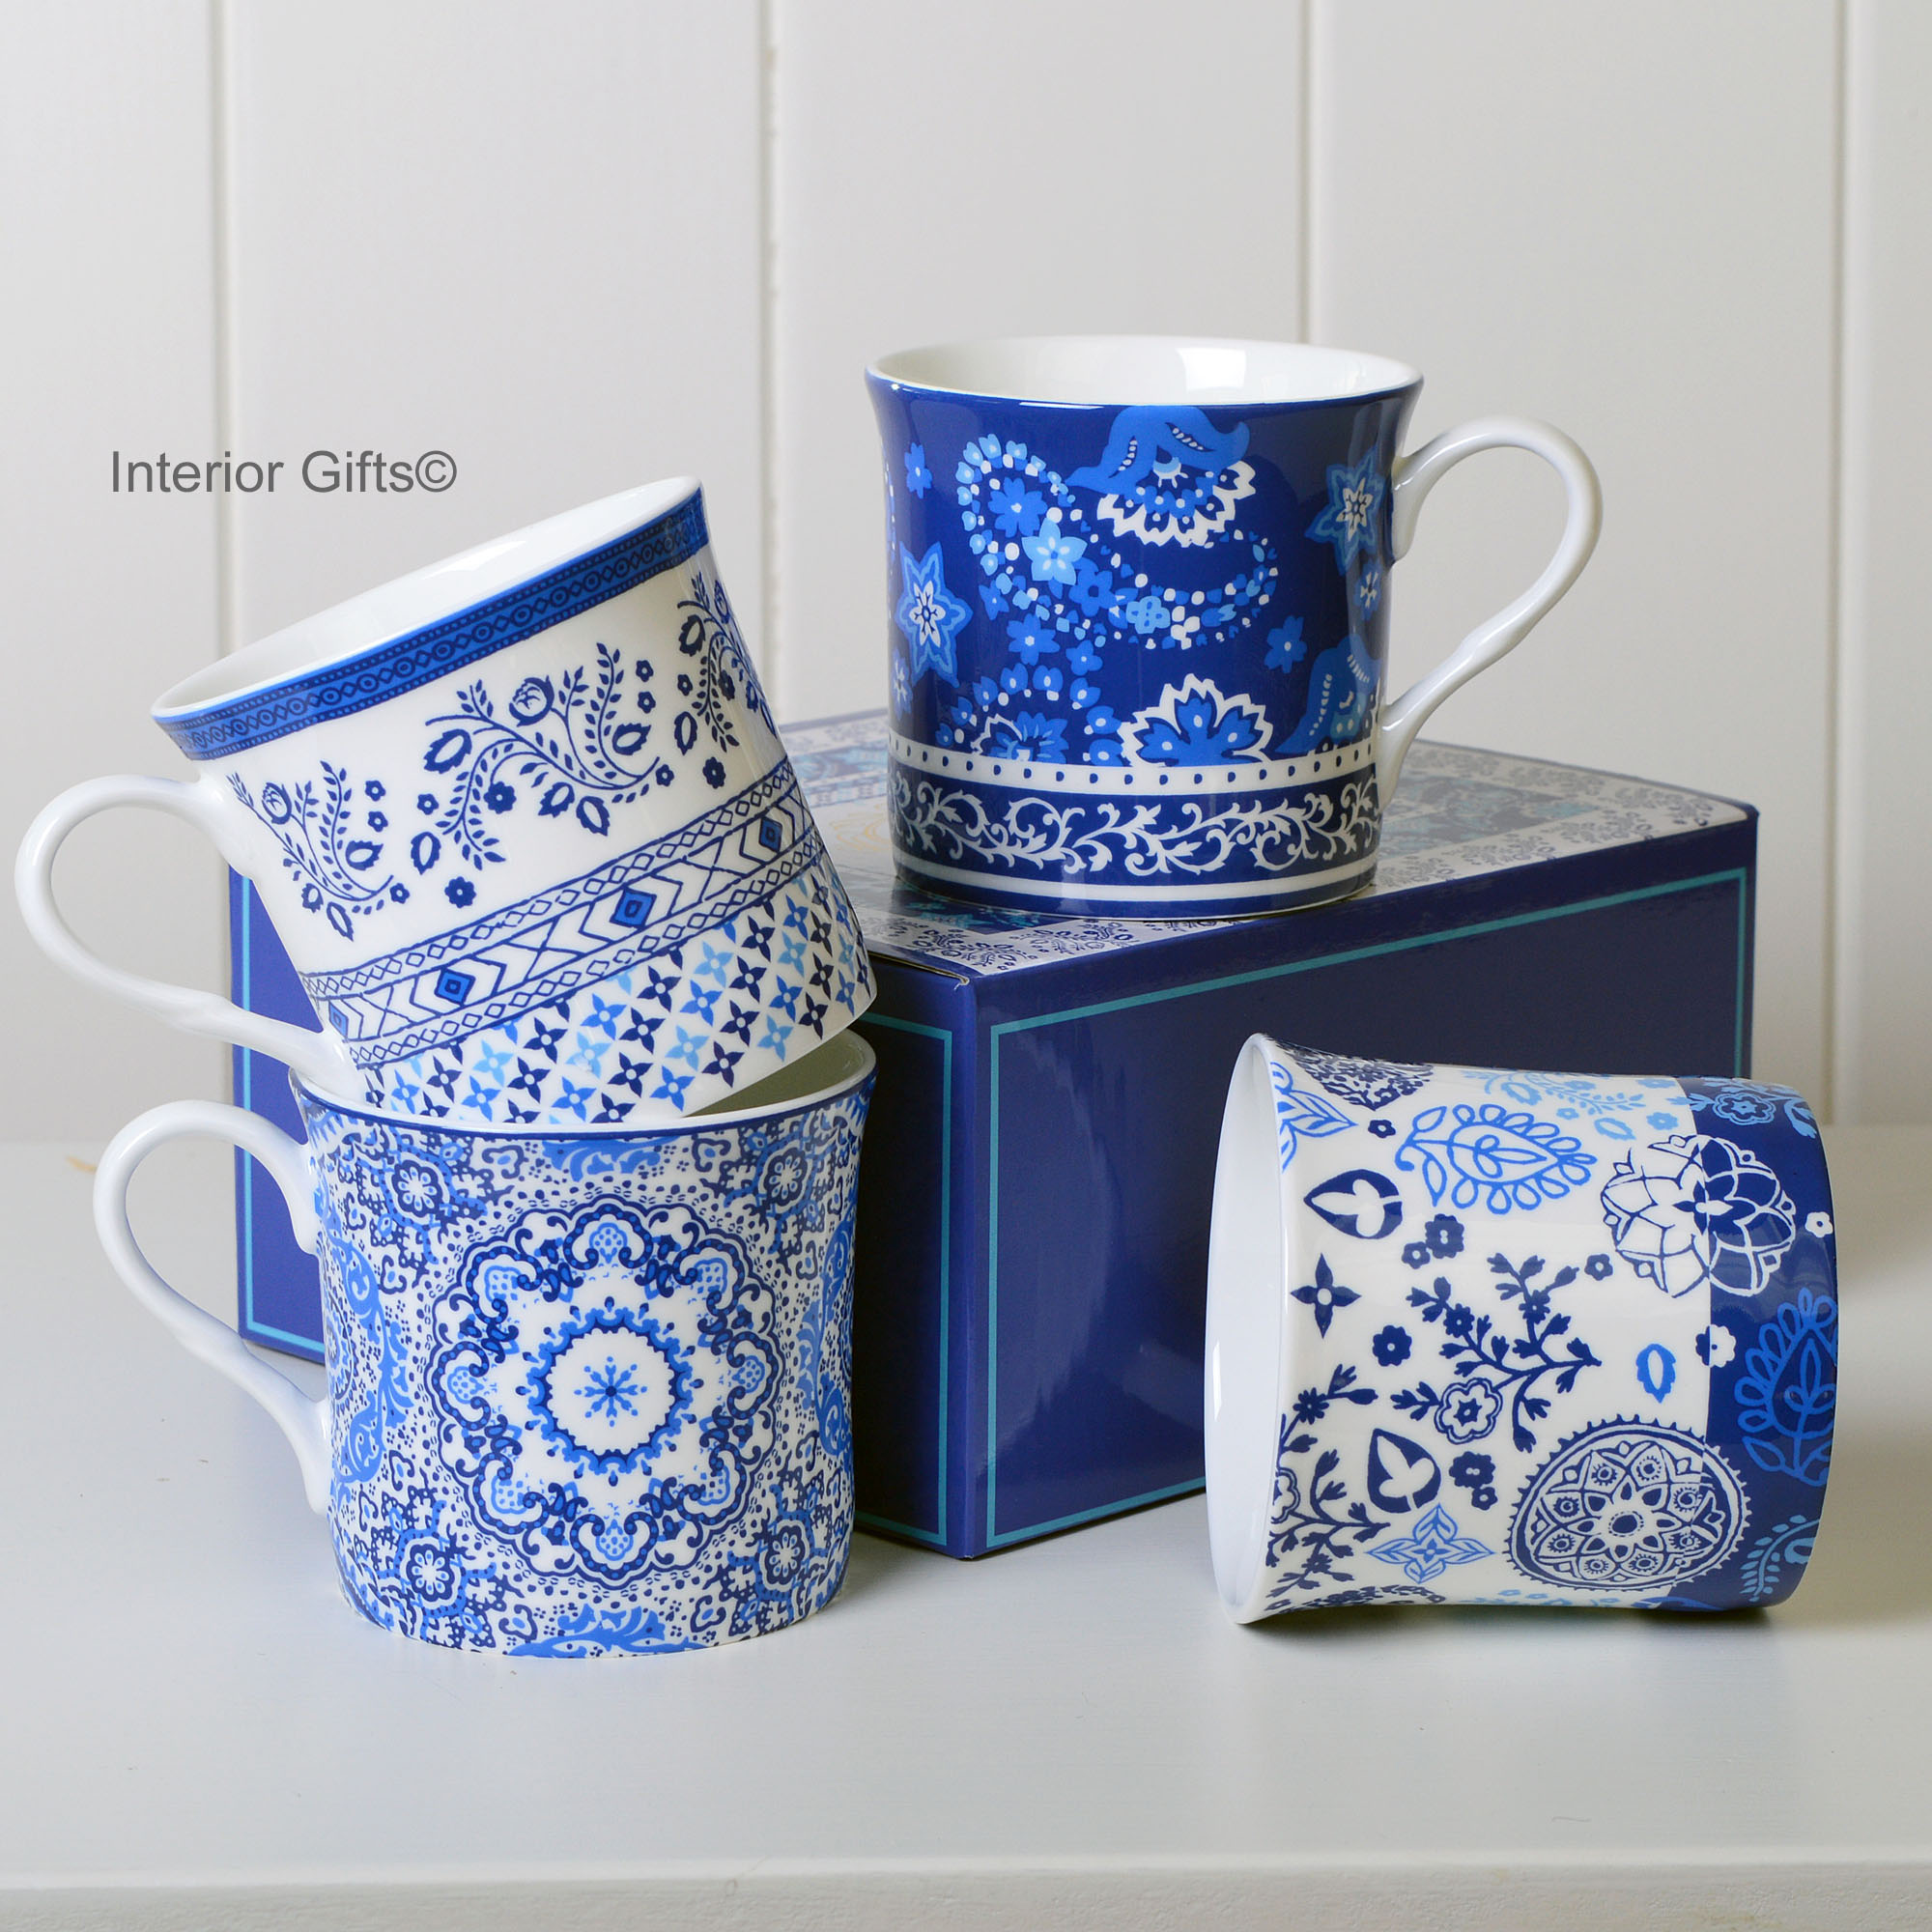 Heath McCabe Fine Bone China Mugs